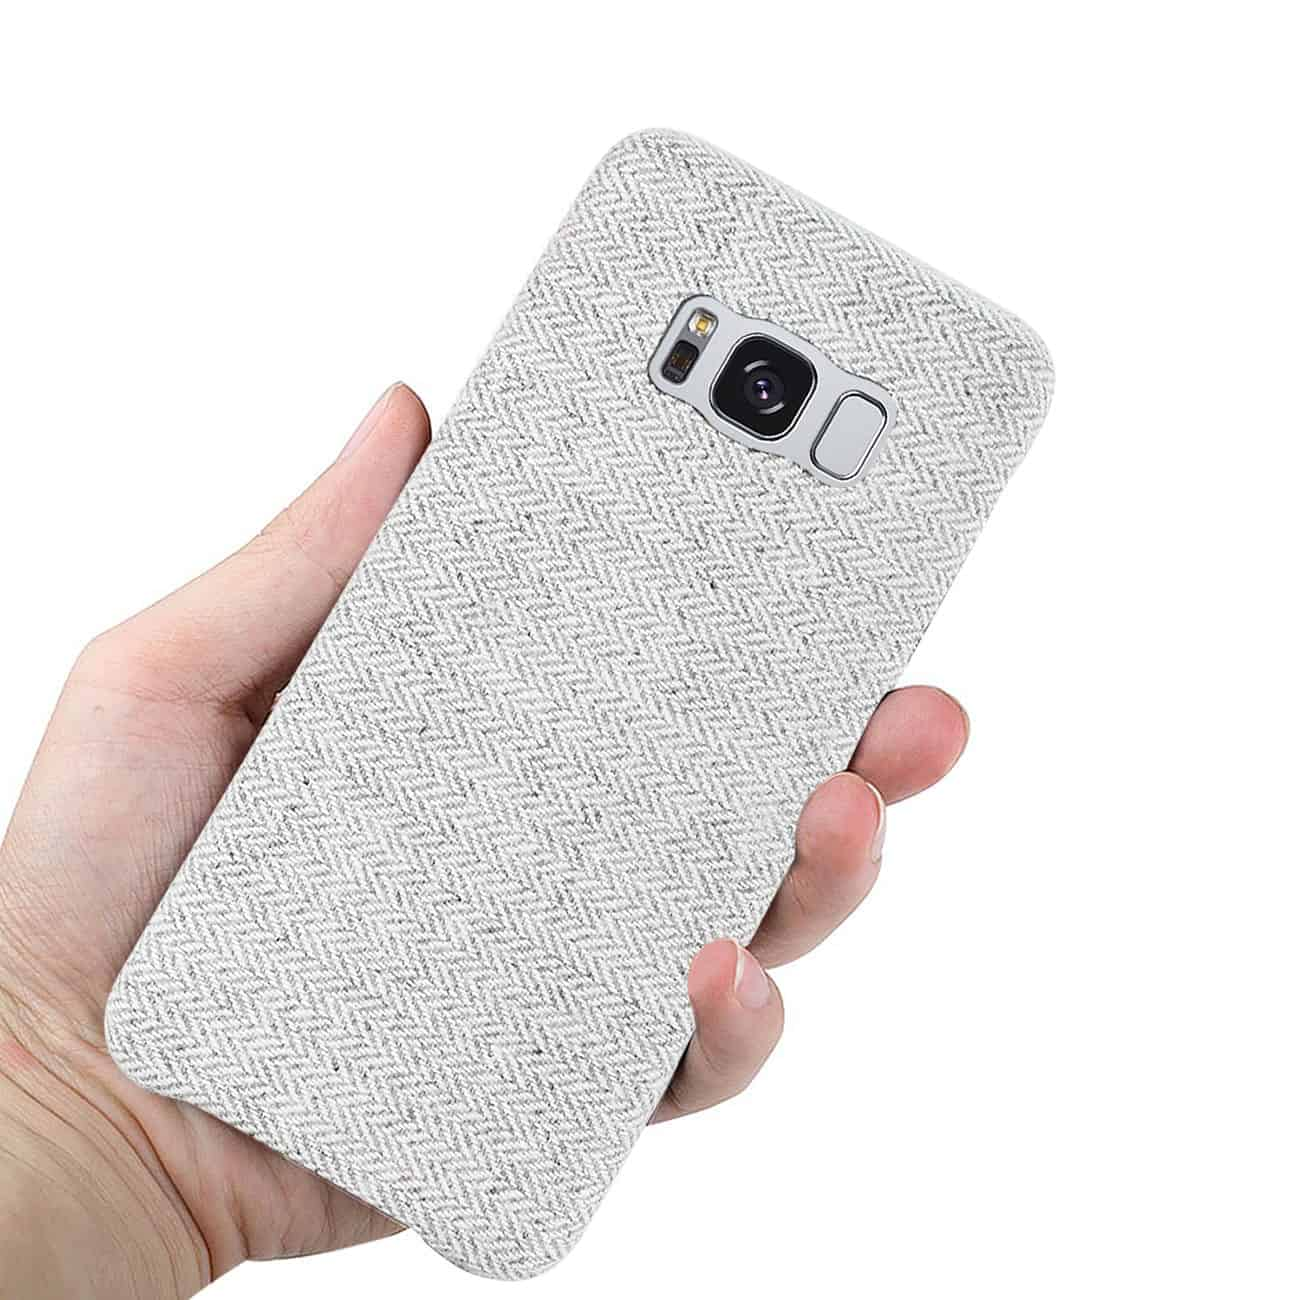 SAMSUNG GALAXY S8 EDGE HERRINGBONE FABRIC IN LIGHT GRAY